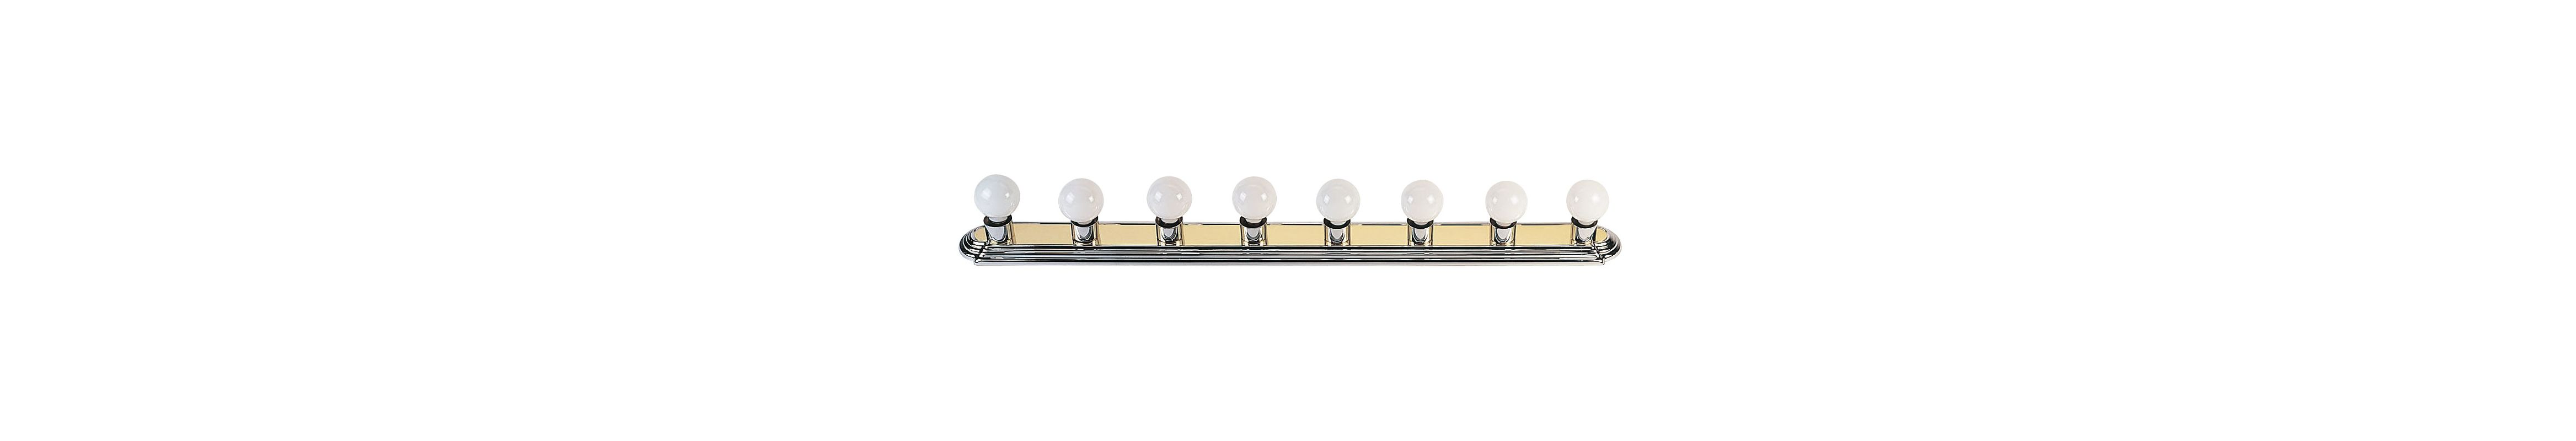 Livex Lighting 1148 Bath Basics 8 Light Bathroom Vanity Strip